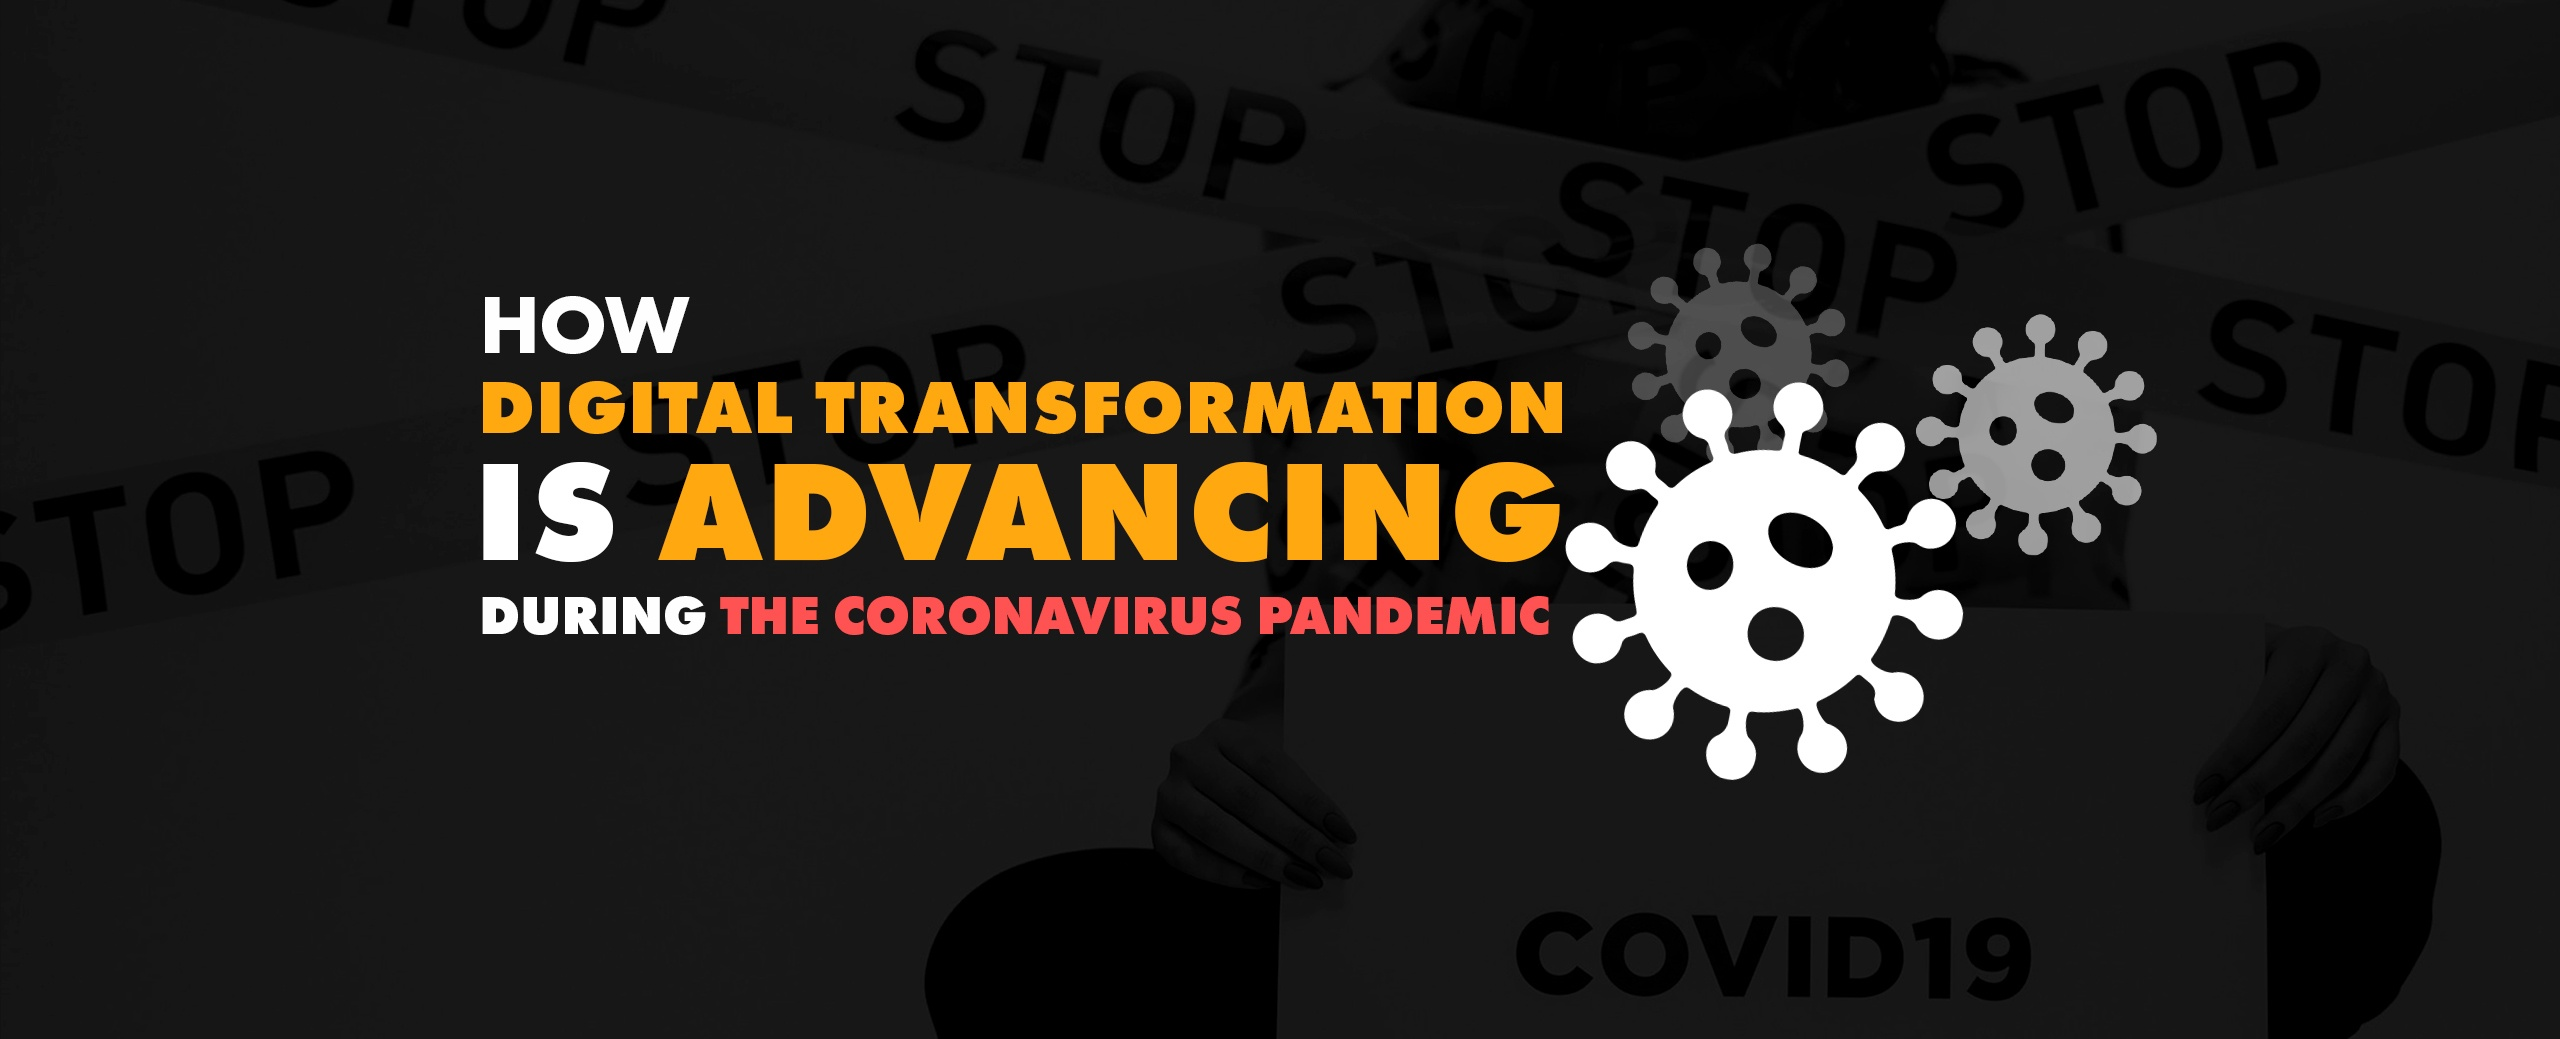 How Digital Transformation is Advancing during the Coronavirus Pandemic